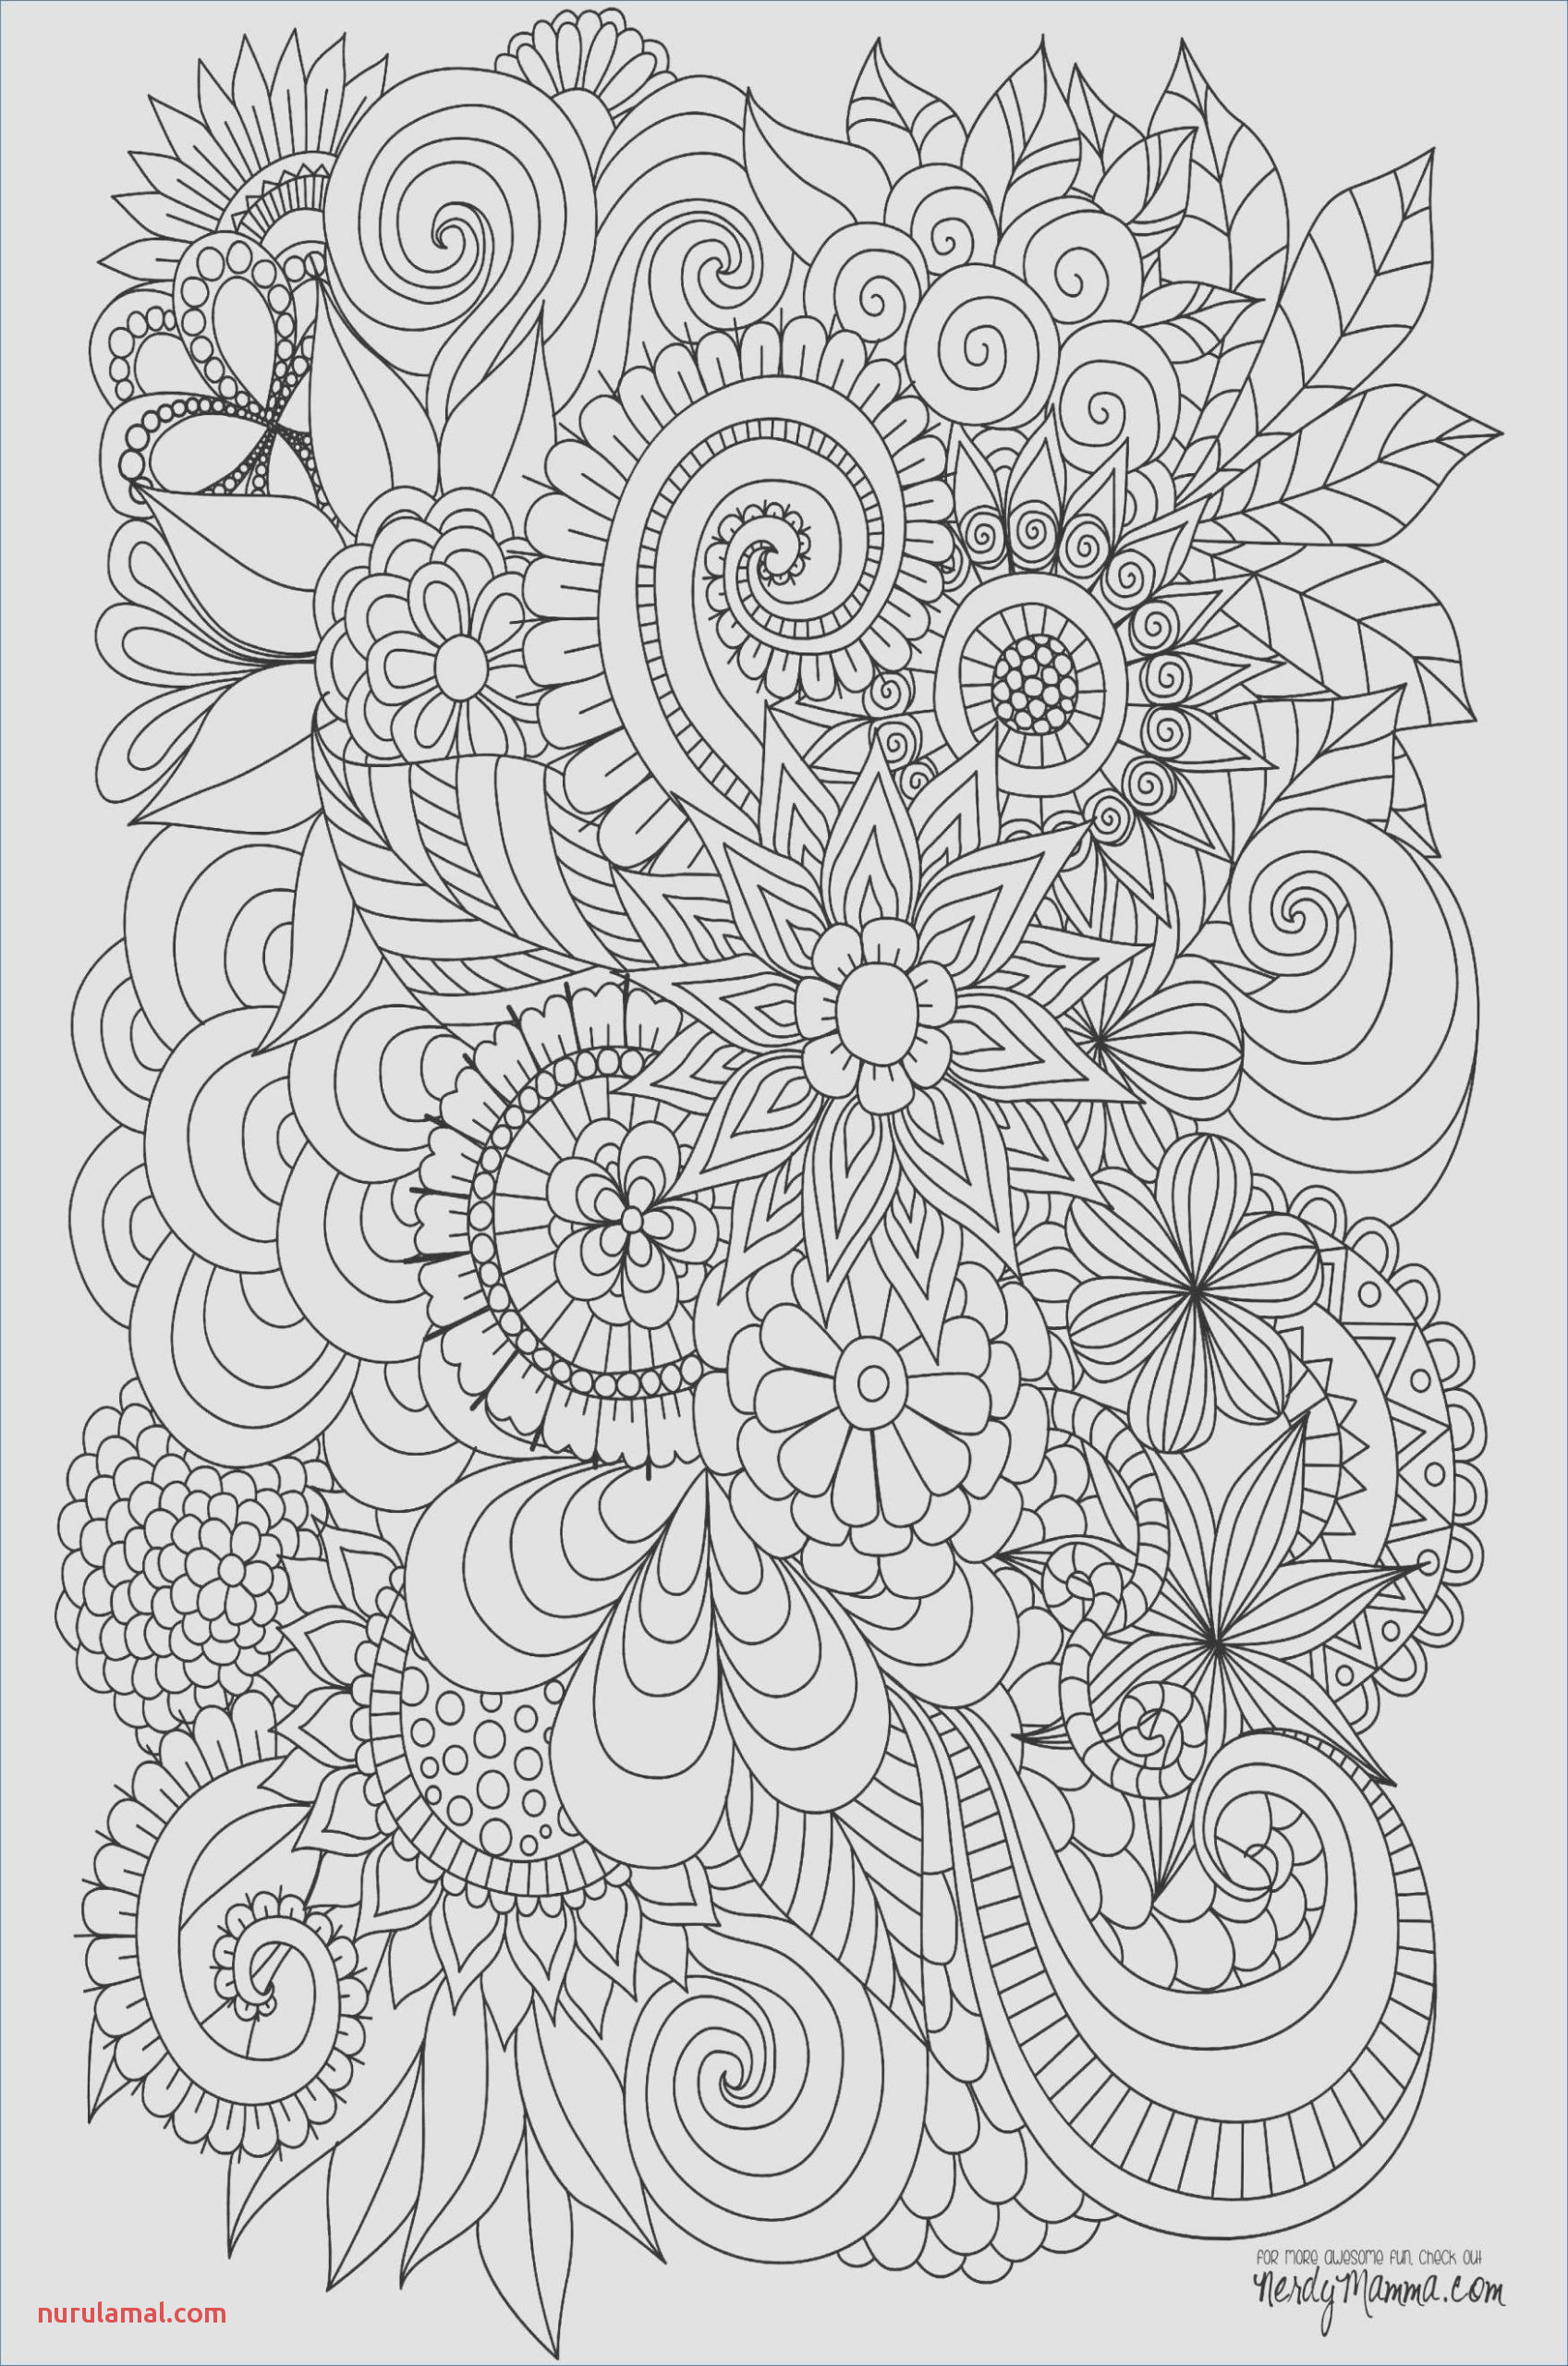 Lovely Coloring Pages with Words Printable – Ingbackfo